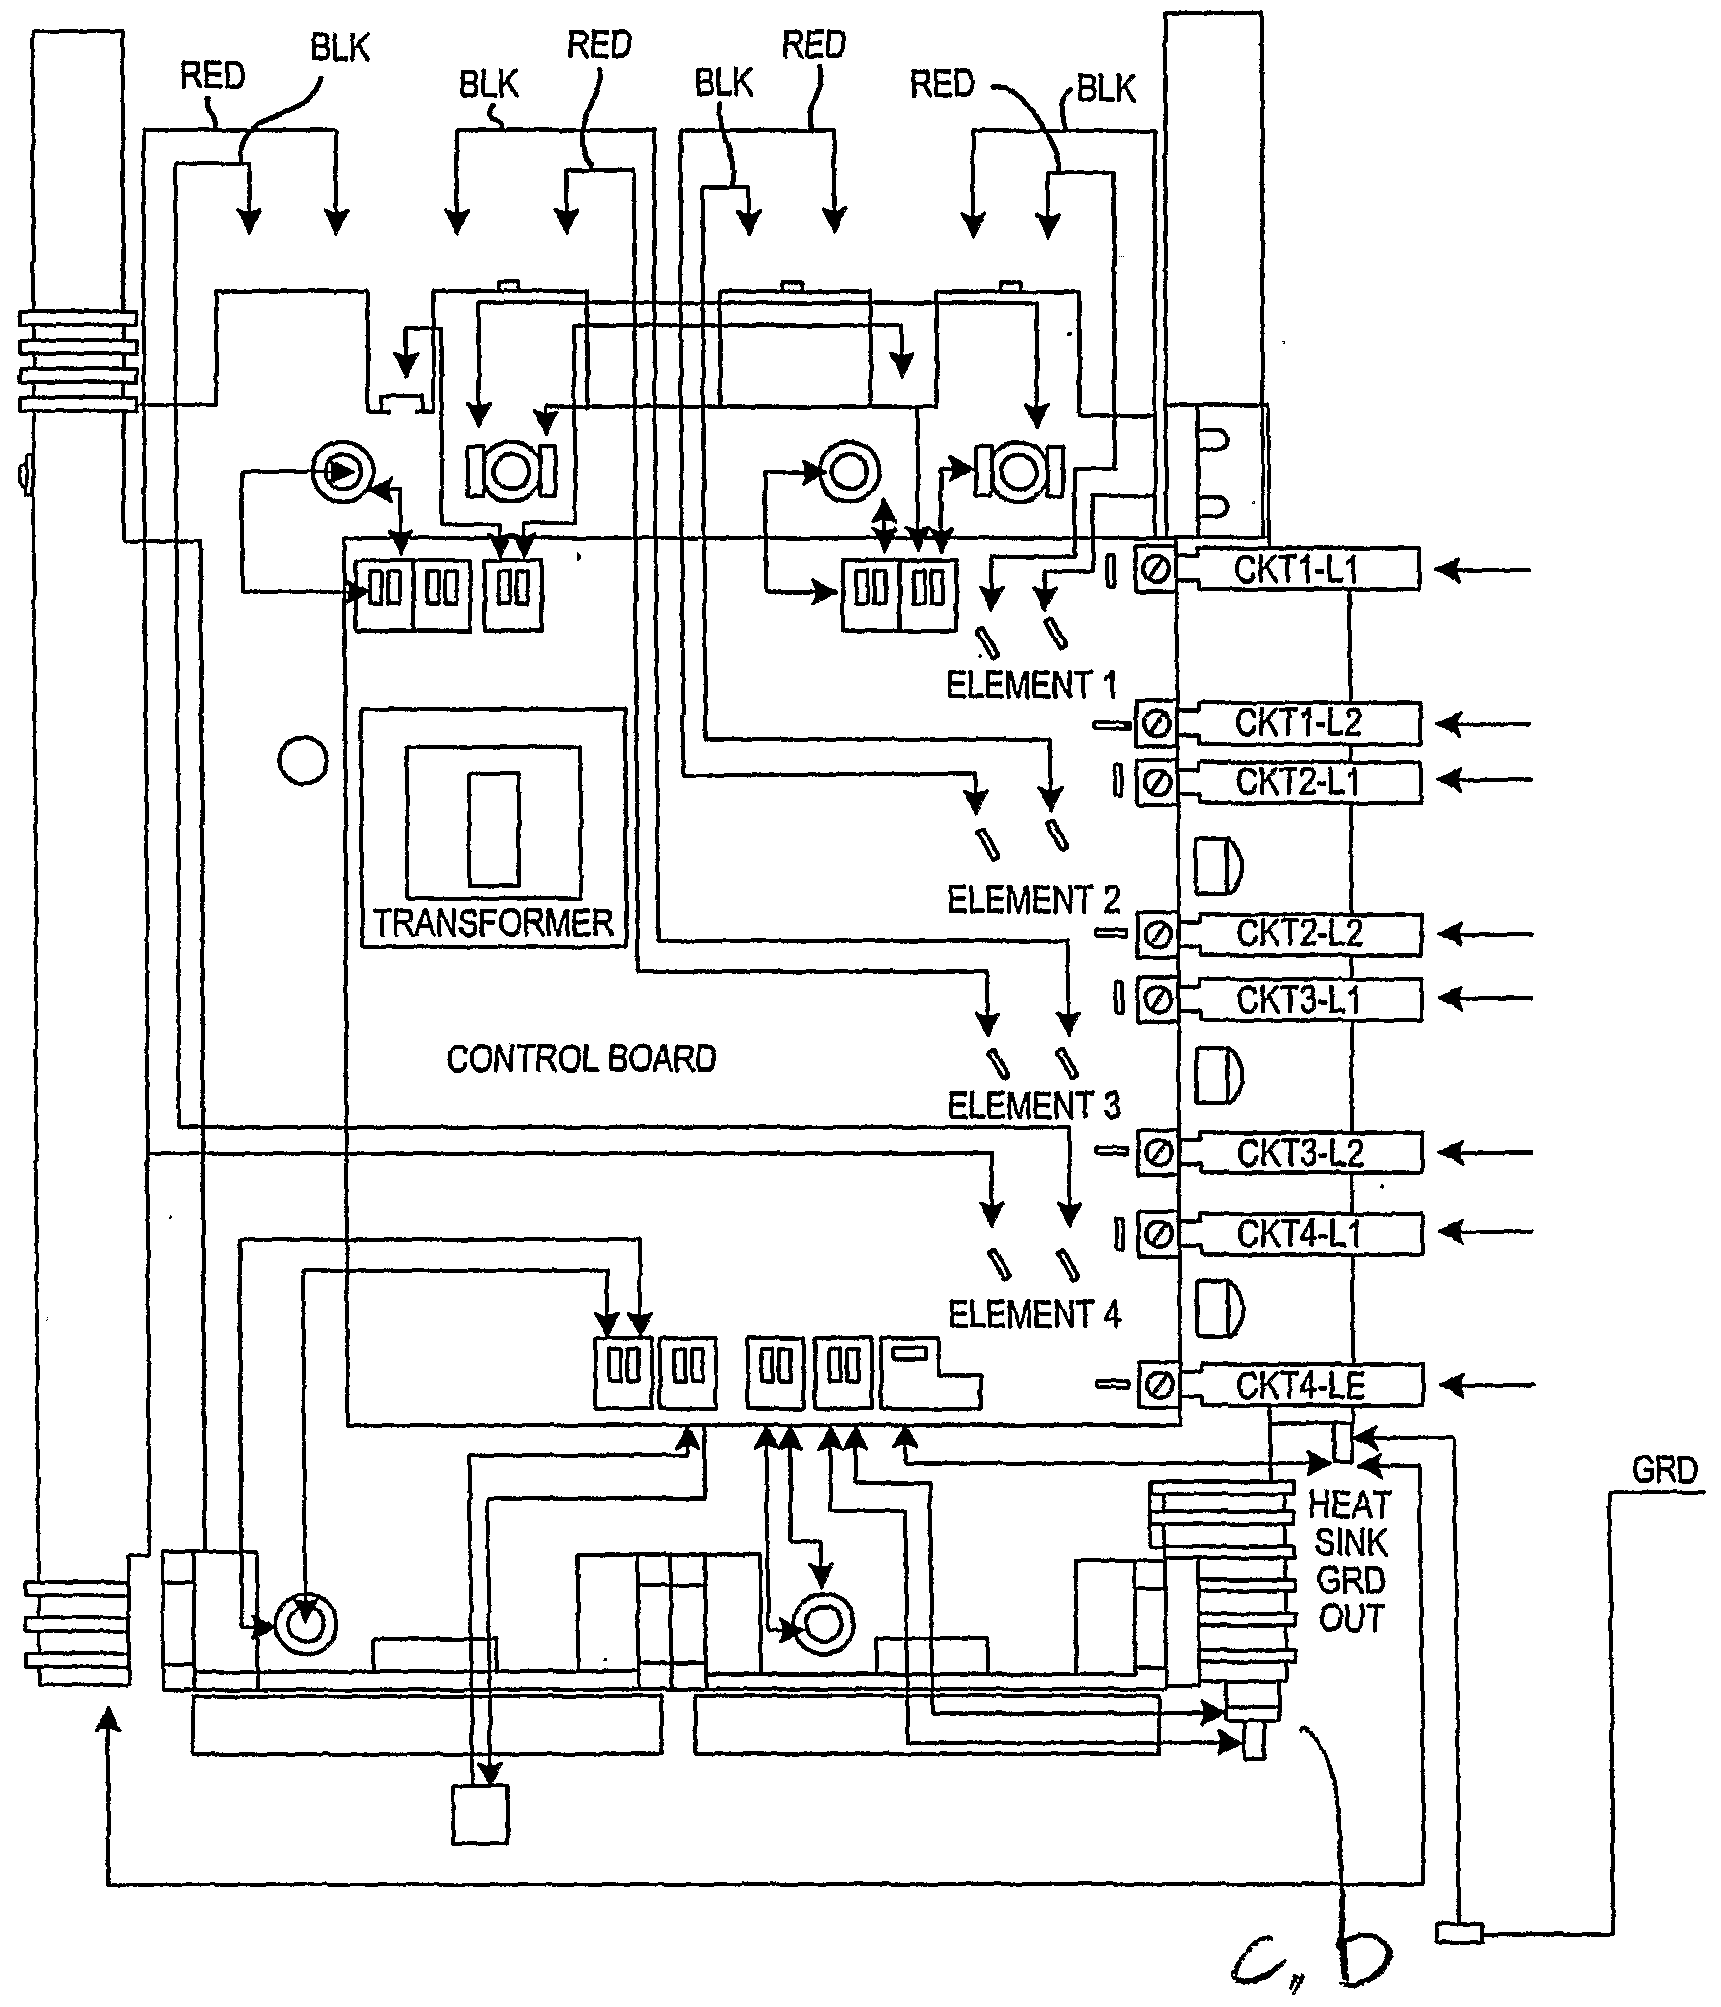 imgf000028_0001 patent wo2006079116a2 solar panel and heat pump powered electric first company air handler wiring diagram at suagrazia.org